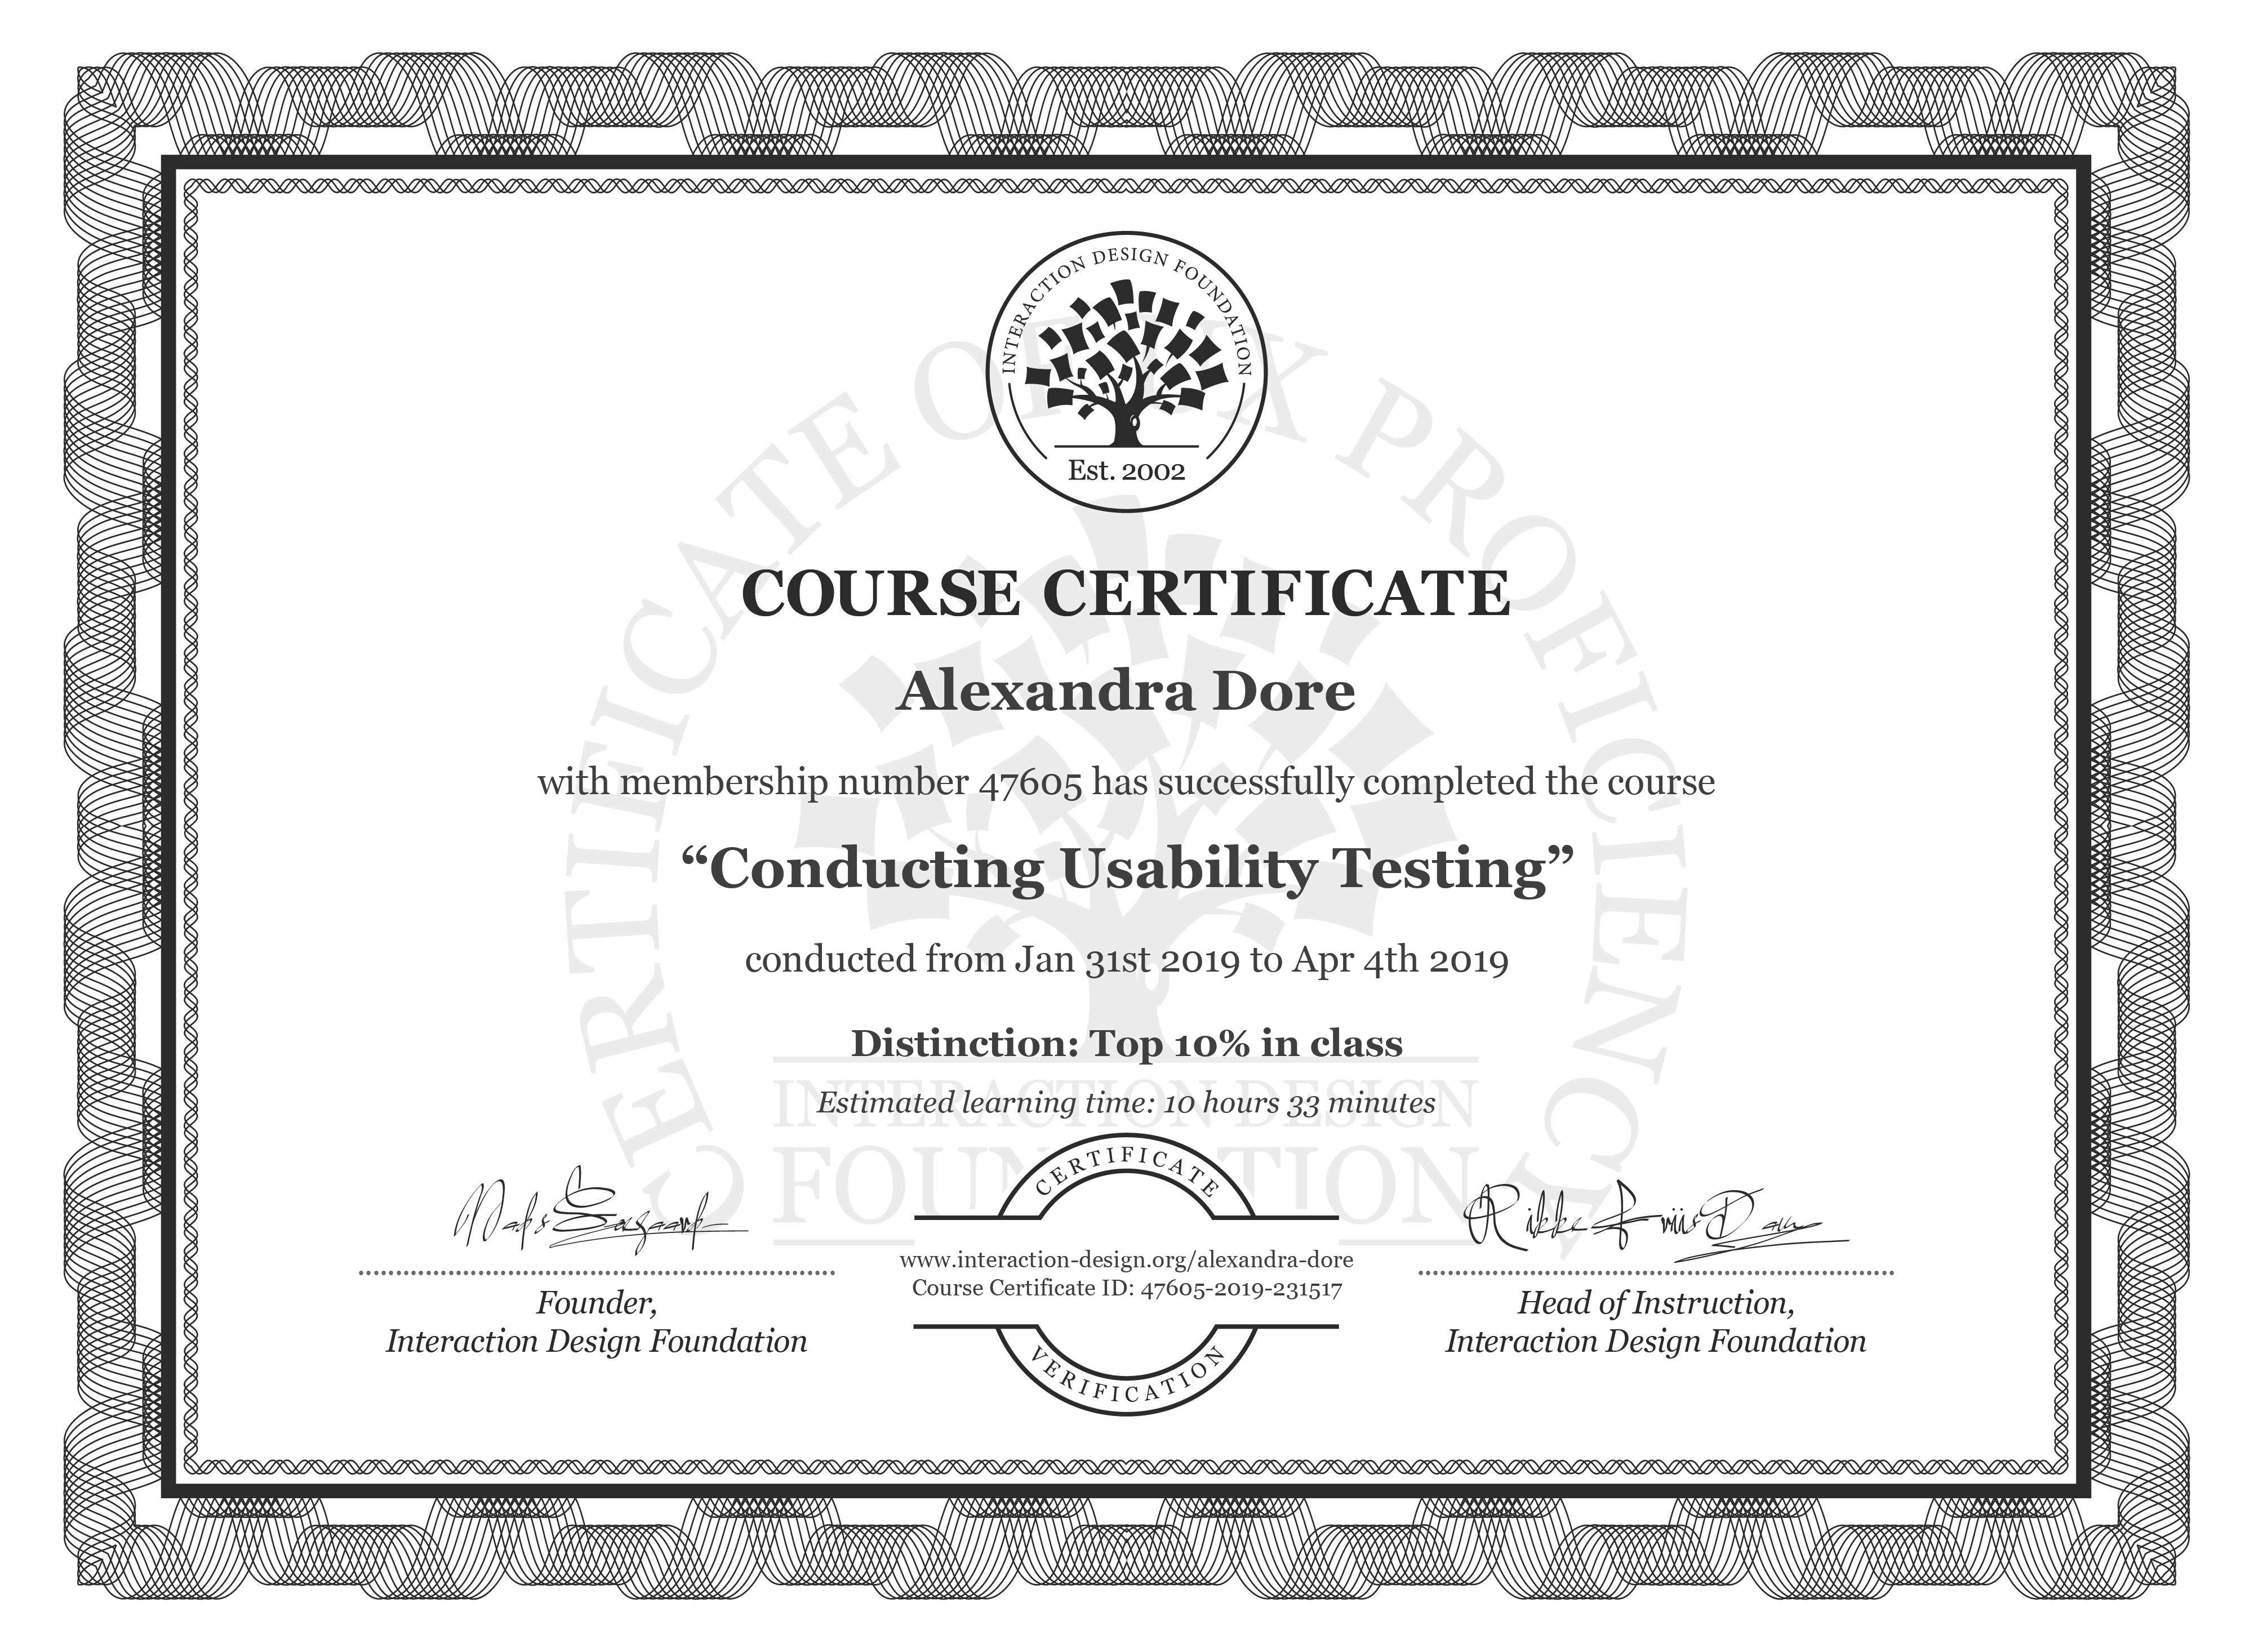 Alexandra Dore: Course Certificate - Conducting Usability Testing